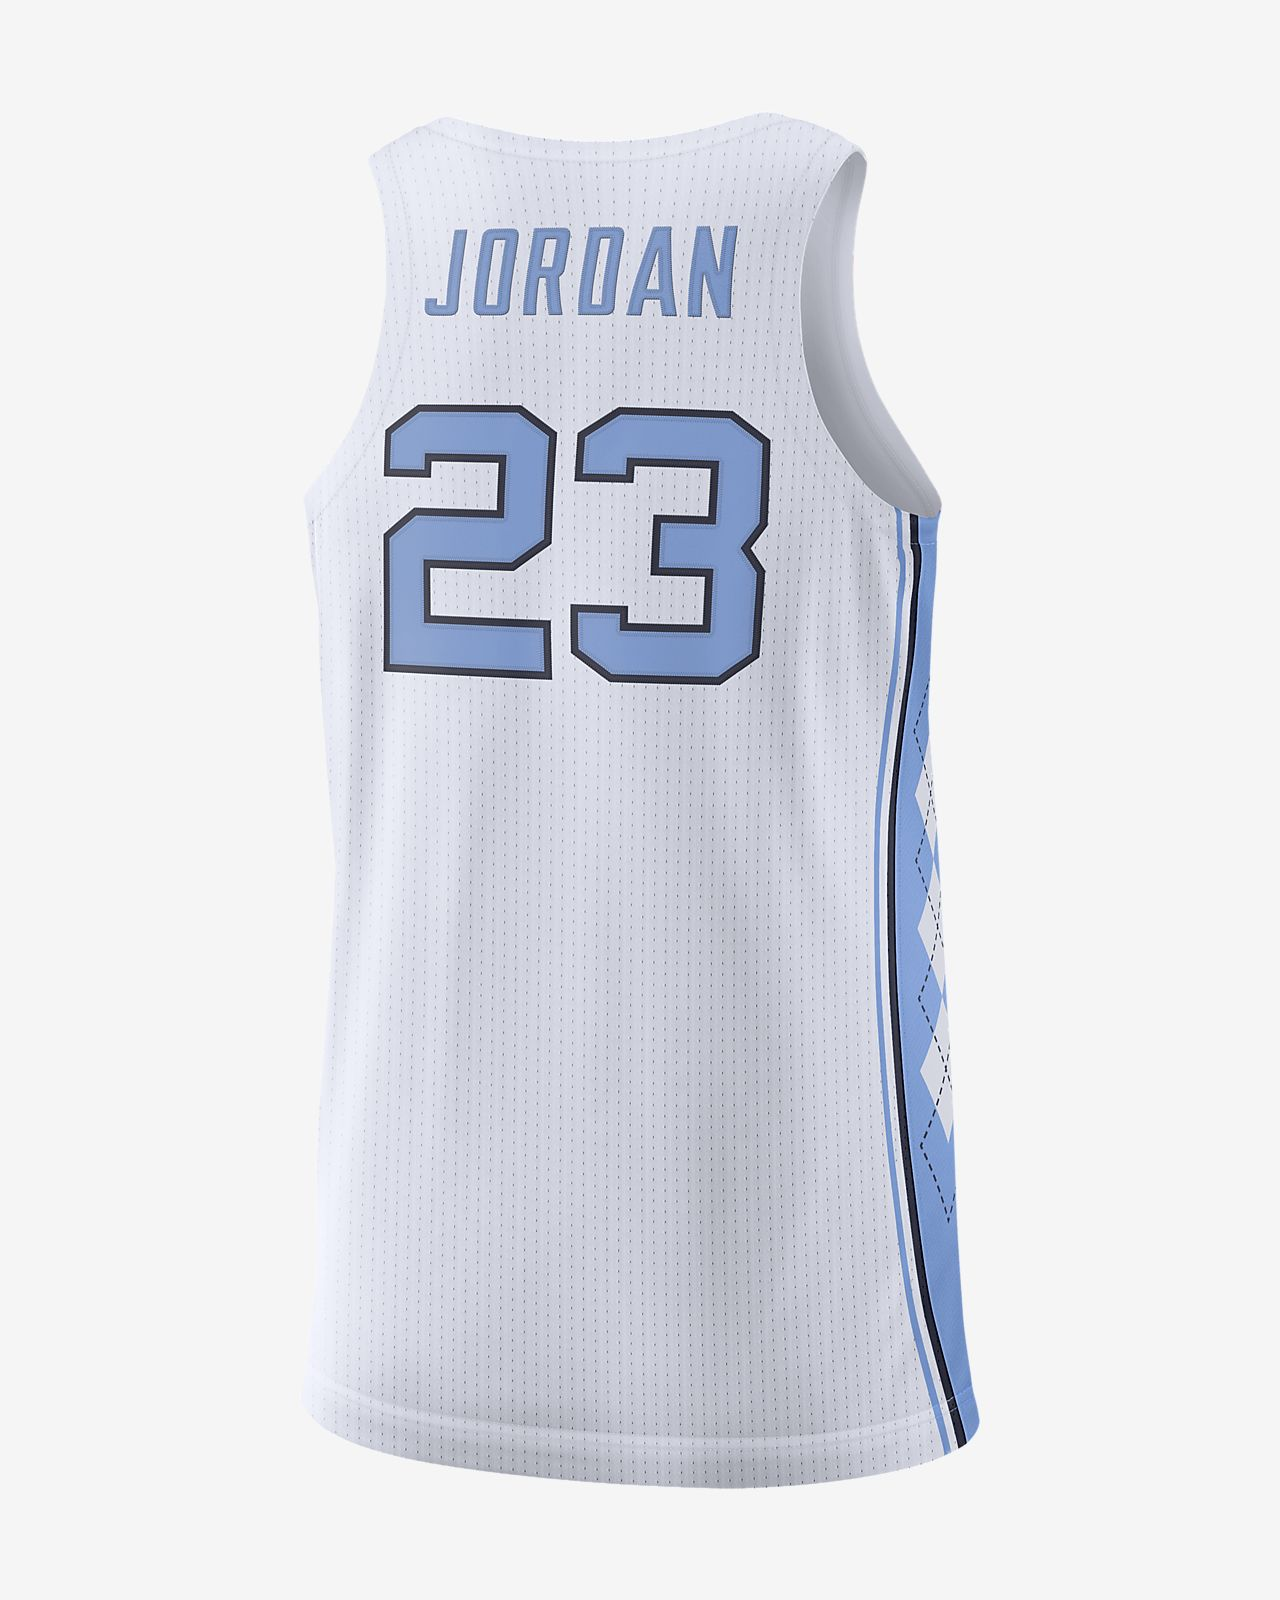 d528108bb0d Jordan College (North Carolina) Men s Basketball Jersey. Nike.com